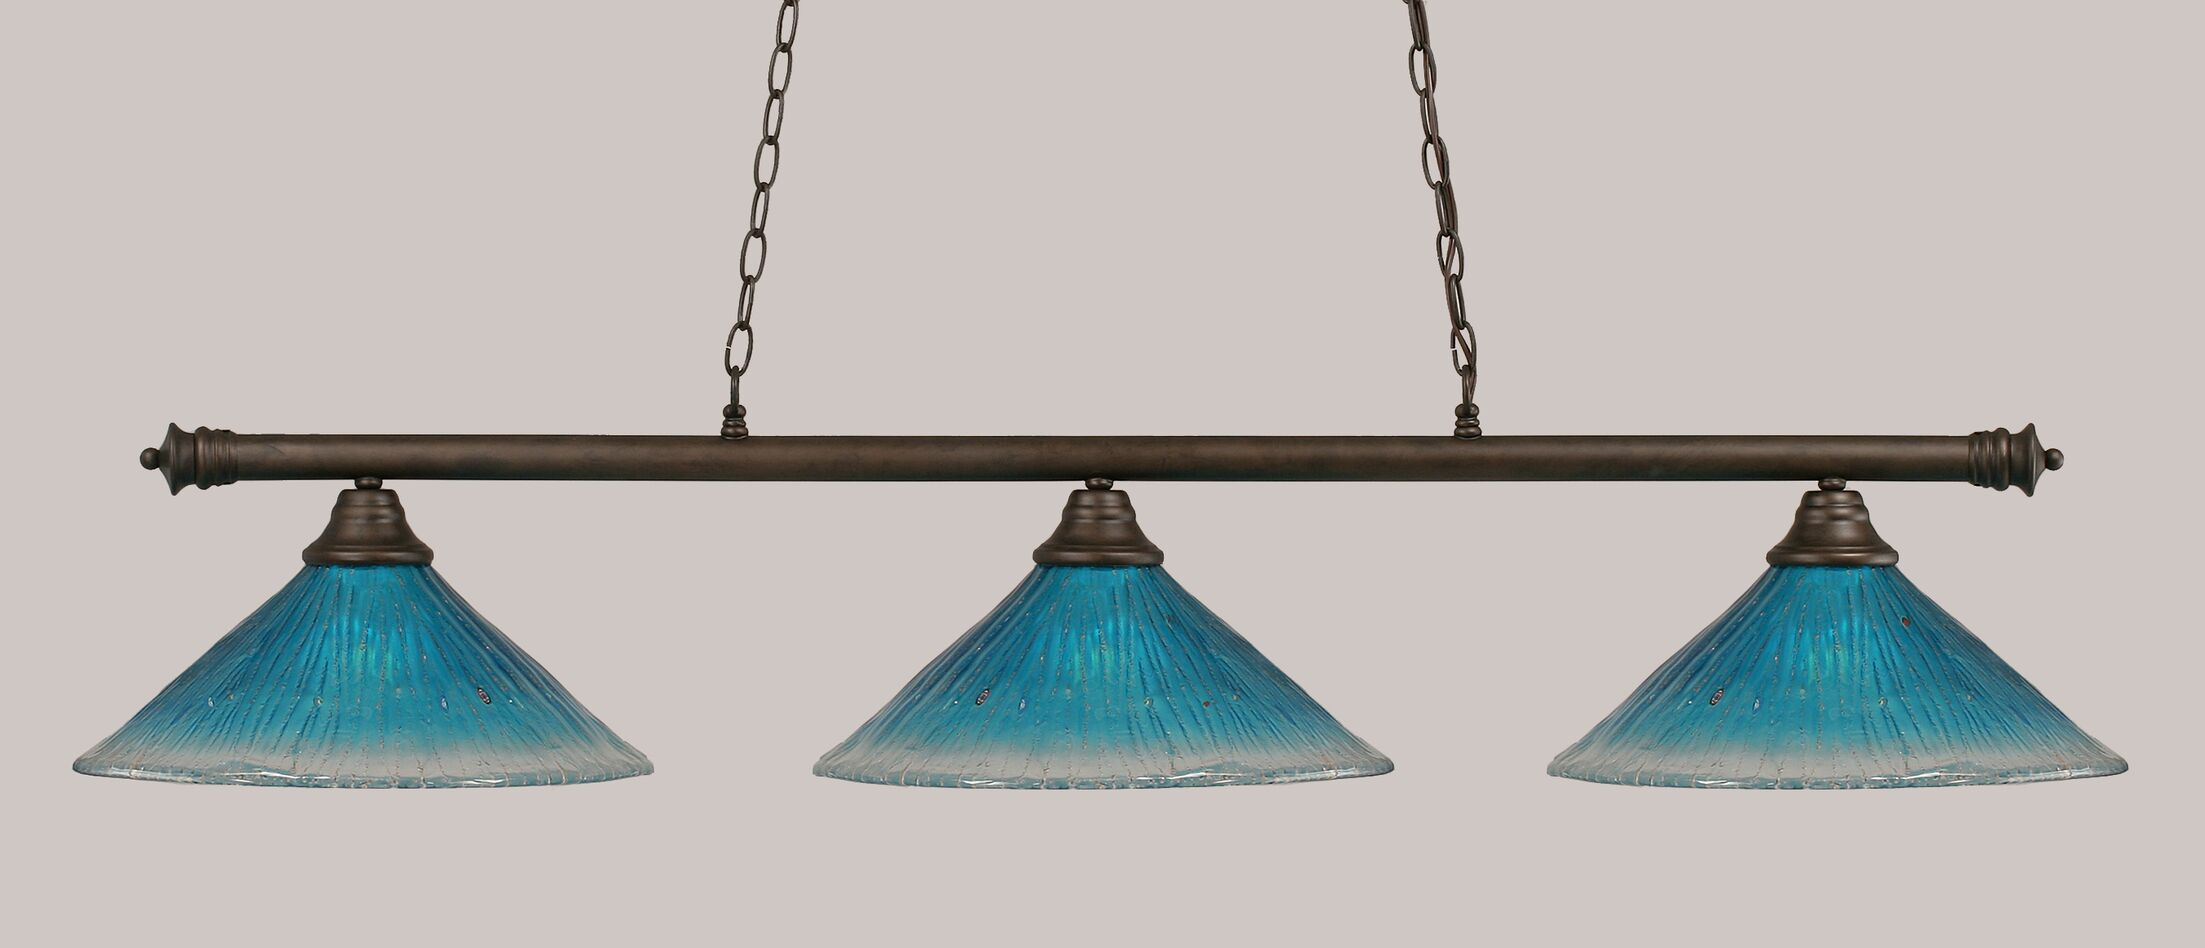 Mendez 3-Light Billiard Light Finish: Bronze, Shade Color: Teal